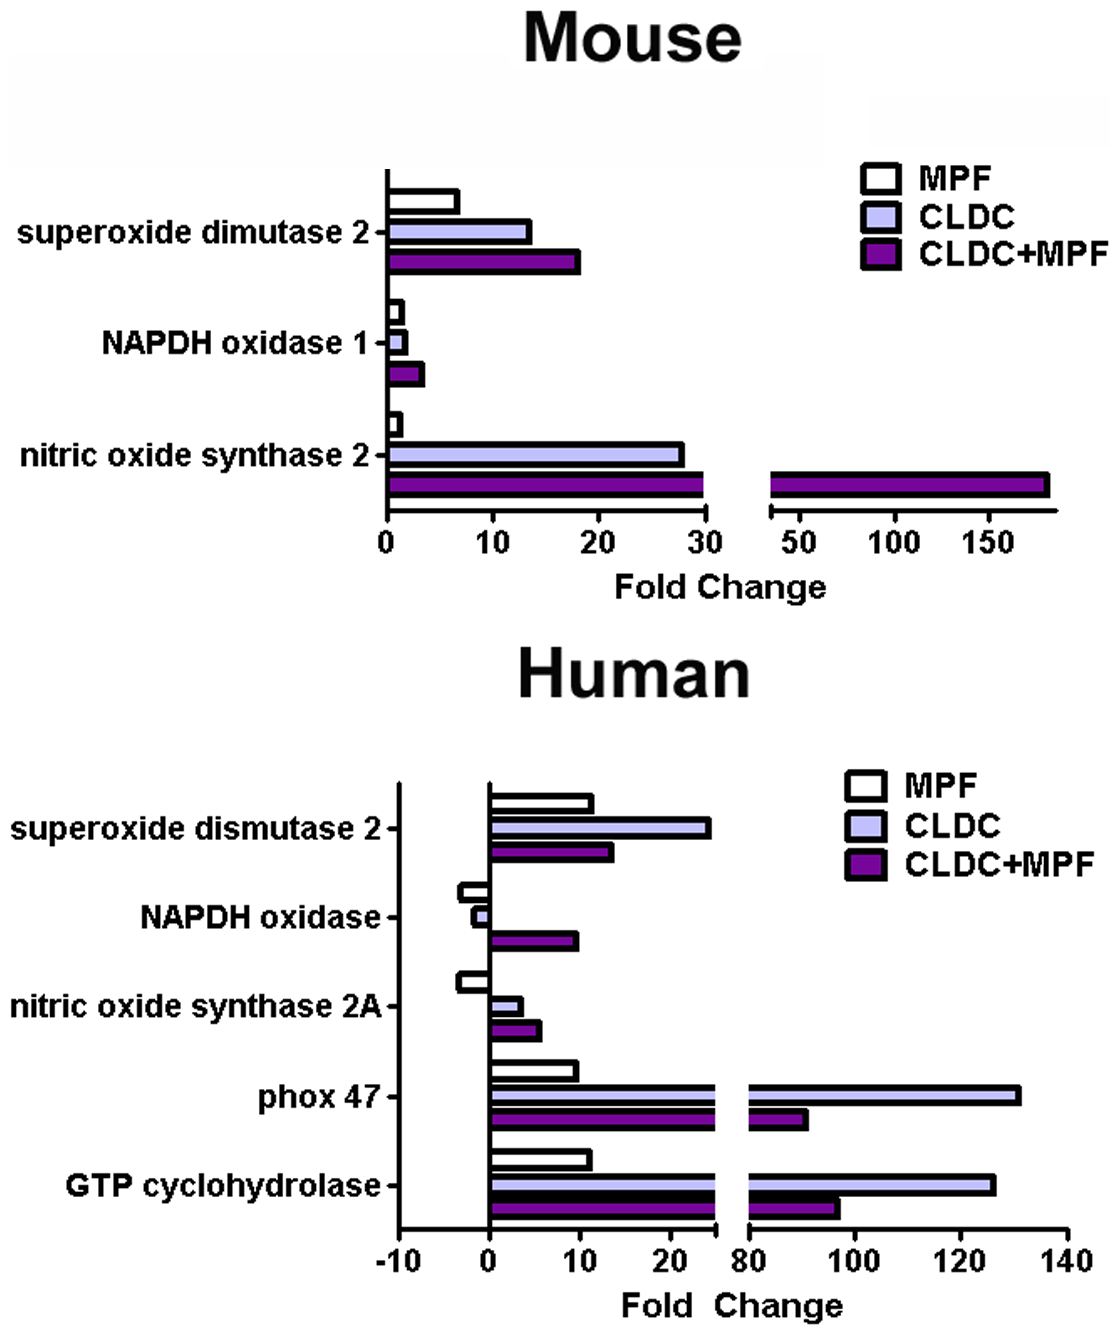 Induction of RNS and ROS genes by CLDC+MPF.